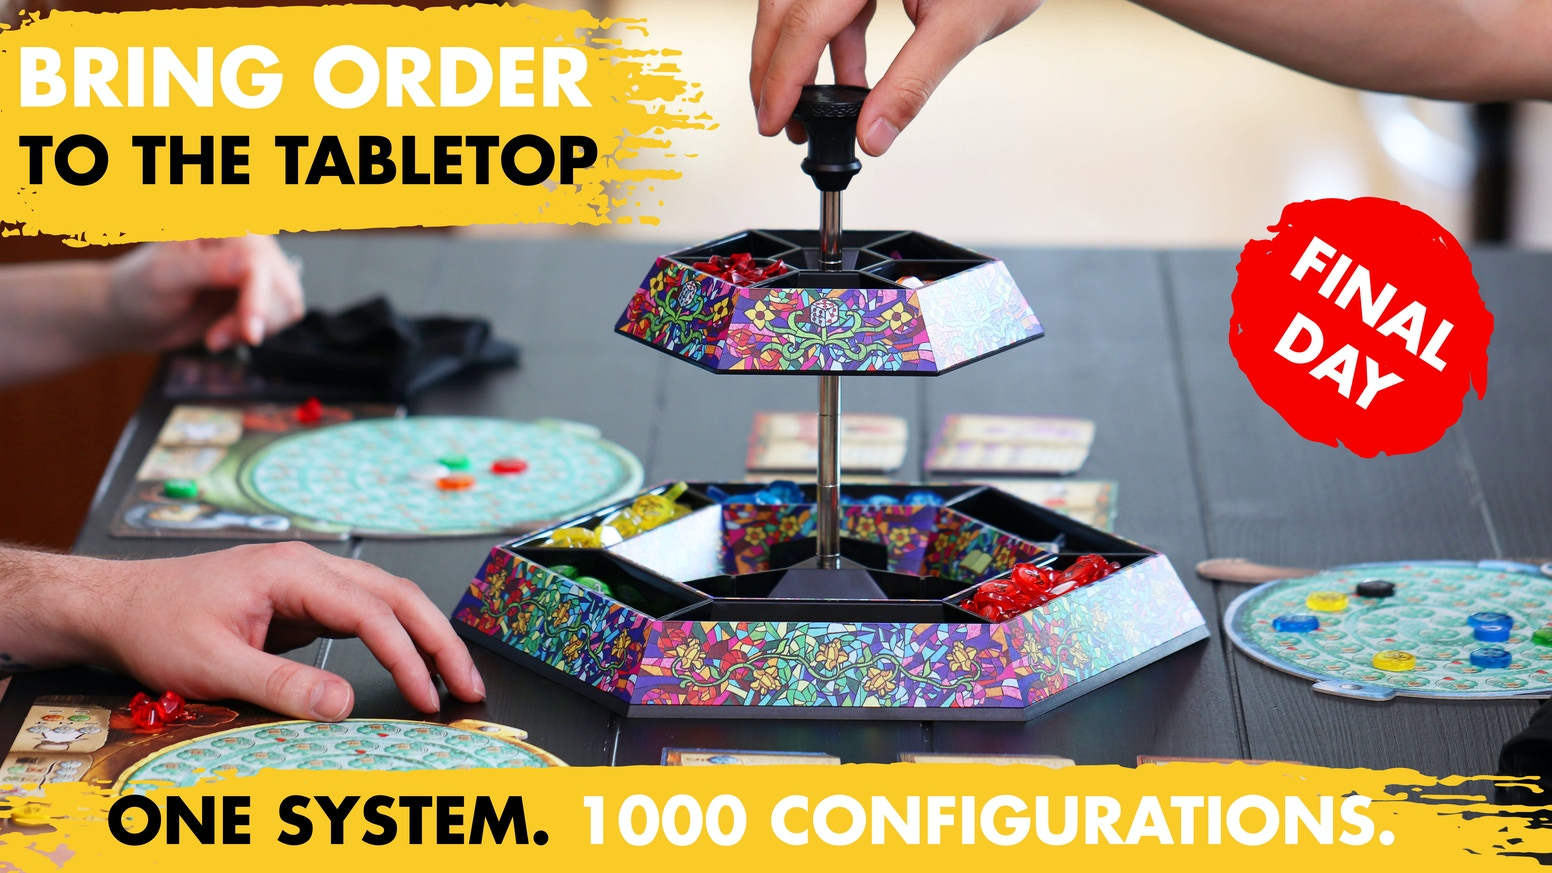 Save table space   Infinite configurations   Collectible art plates by tabletop artists   Converts to dice tray    Compact travel mode.